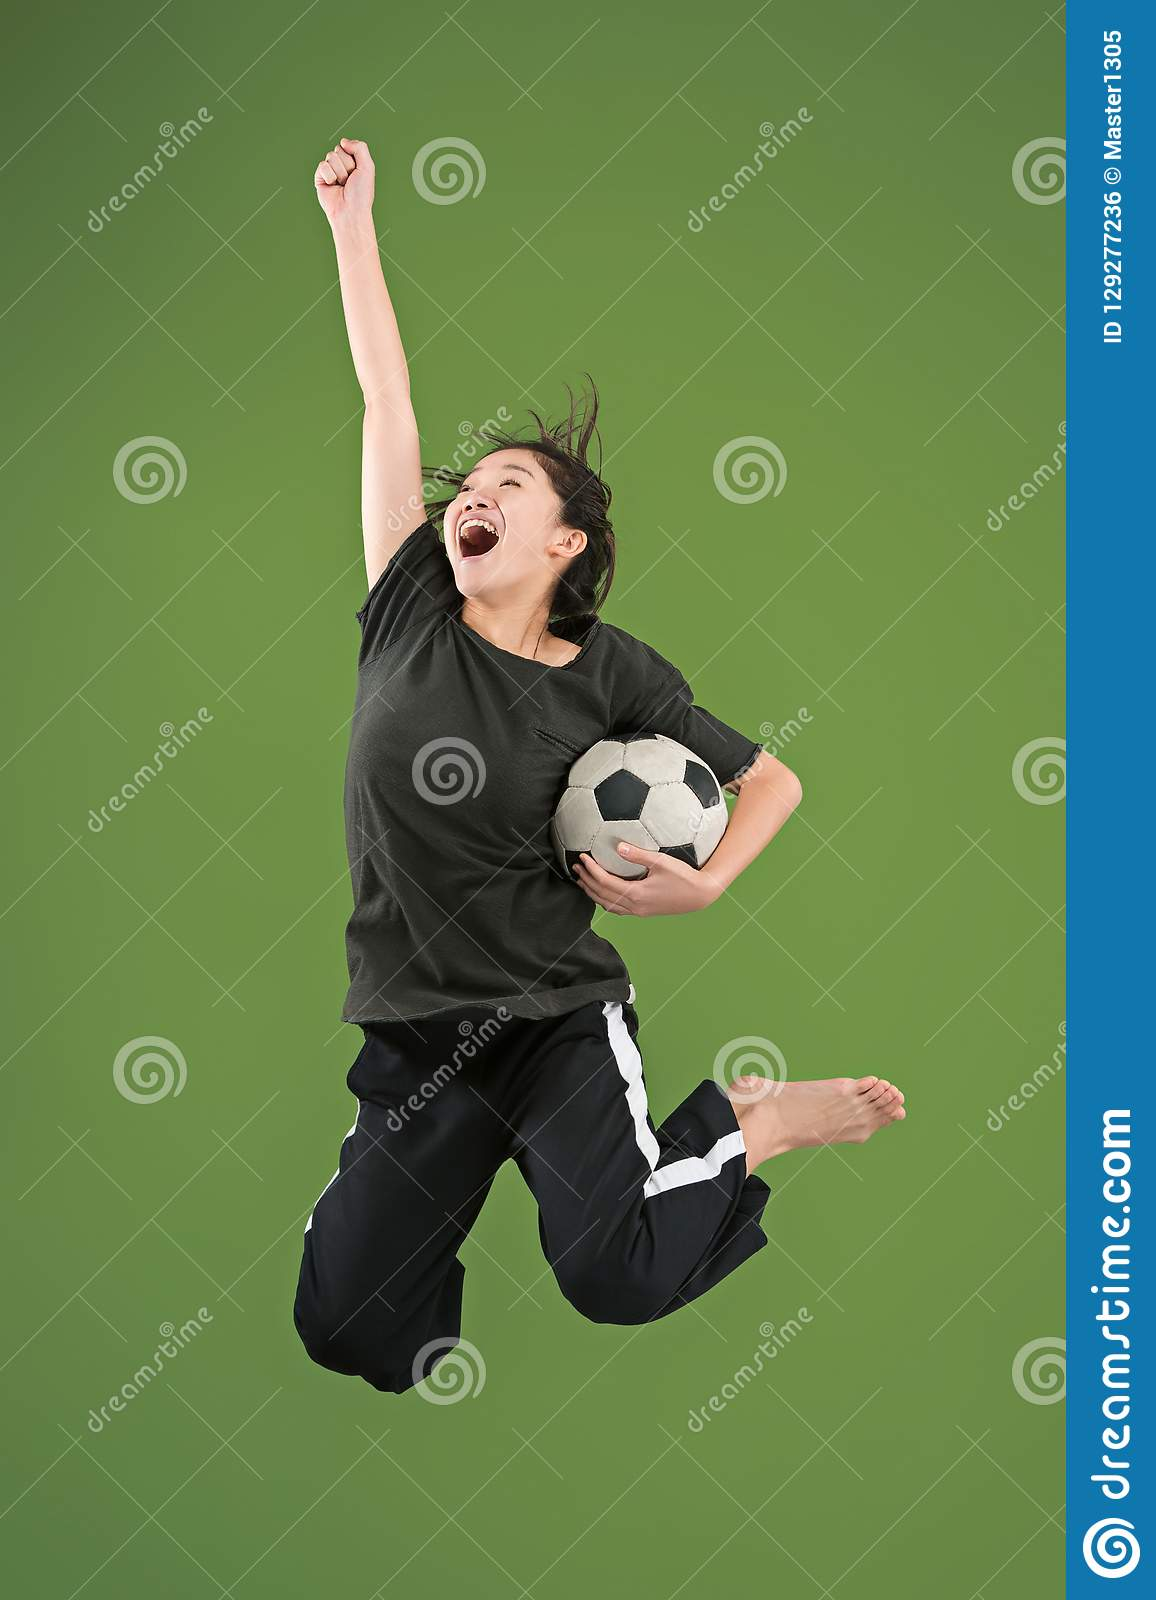 Forward to the victory.The young woman as soccer football player jumping and kicking the ball at studio on green